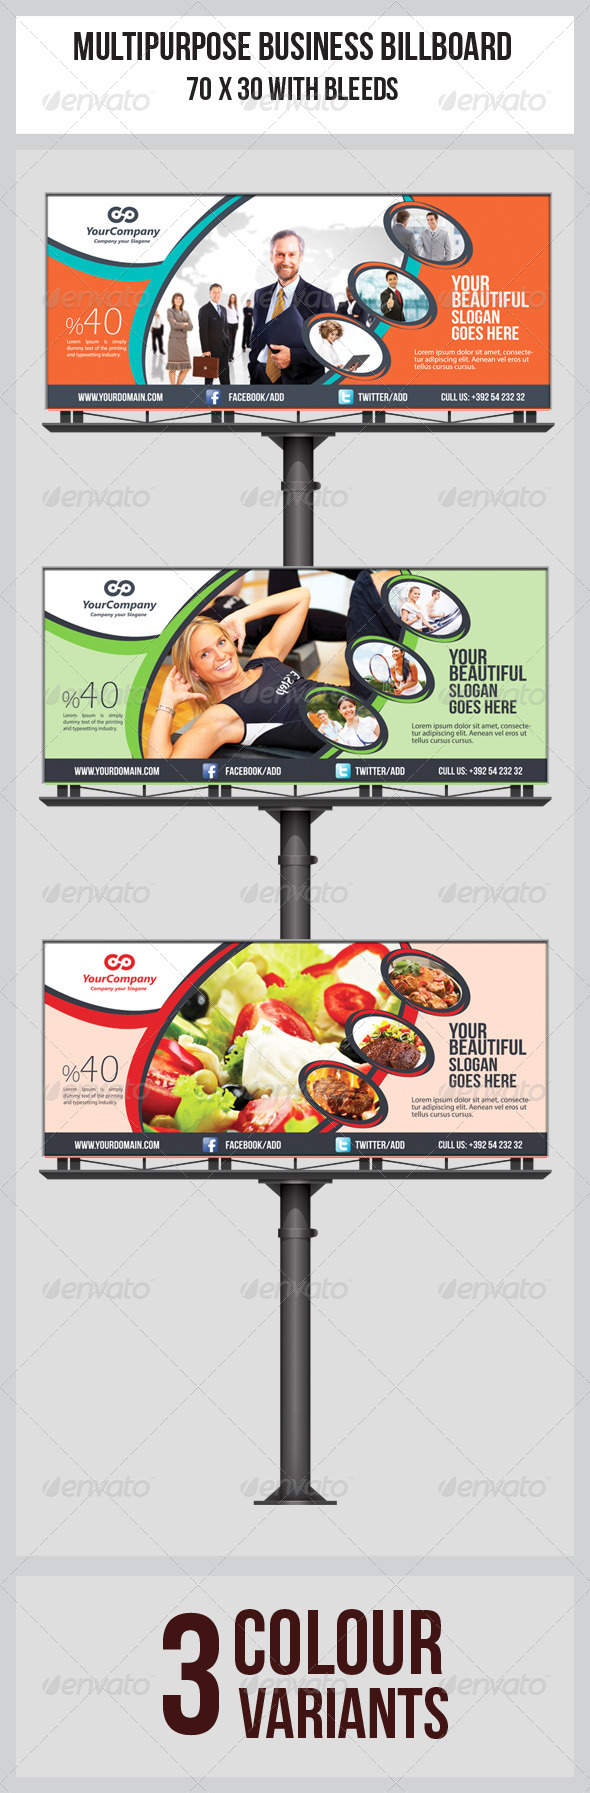 GraphicRiver Multipurpose Business Billboard Template 5853846